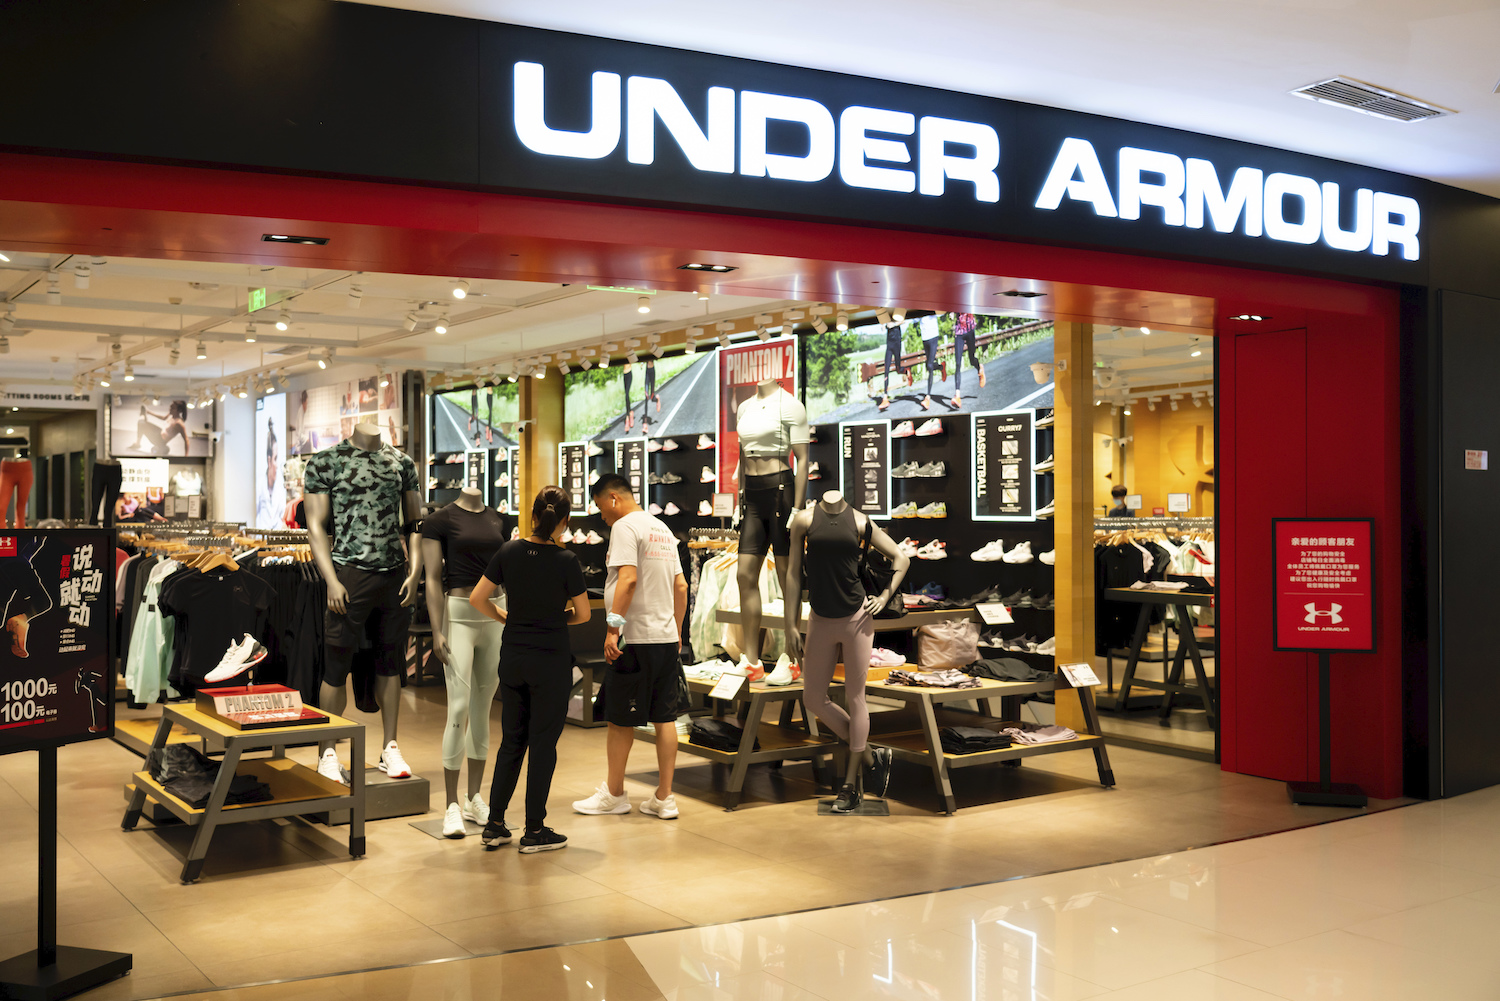 Under Armour is raising its minimum hourly wages from $10 to $15, raising pay for 8,000 workers in stores and distribution centers.